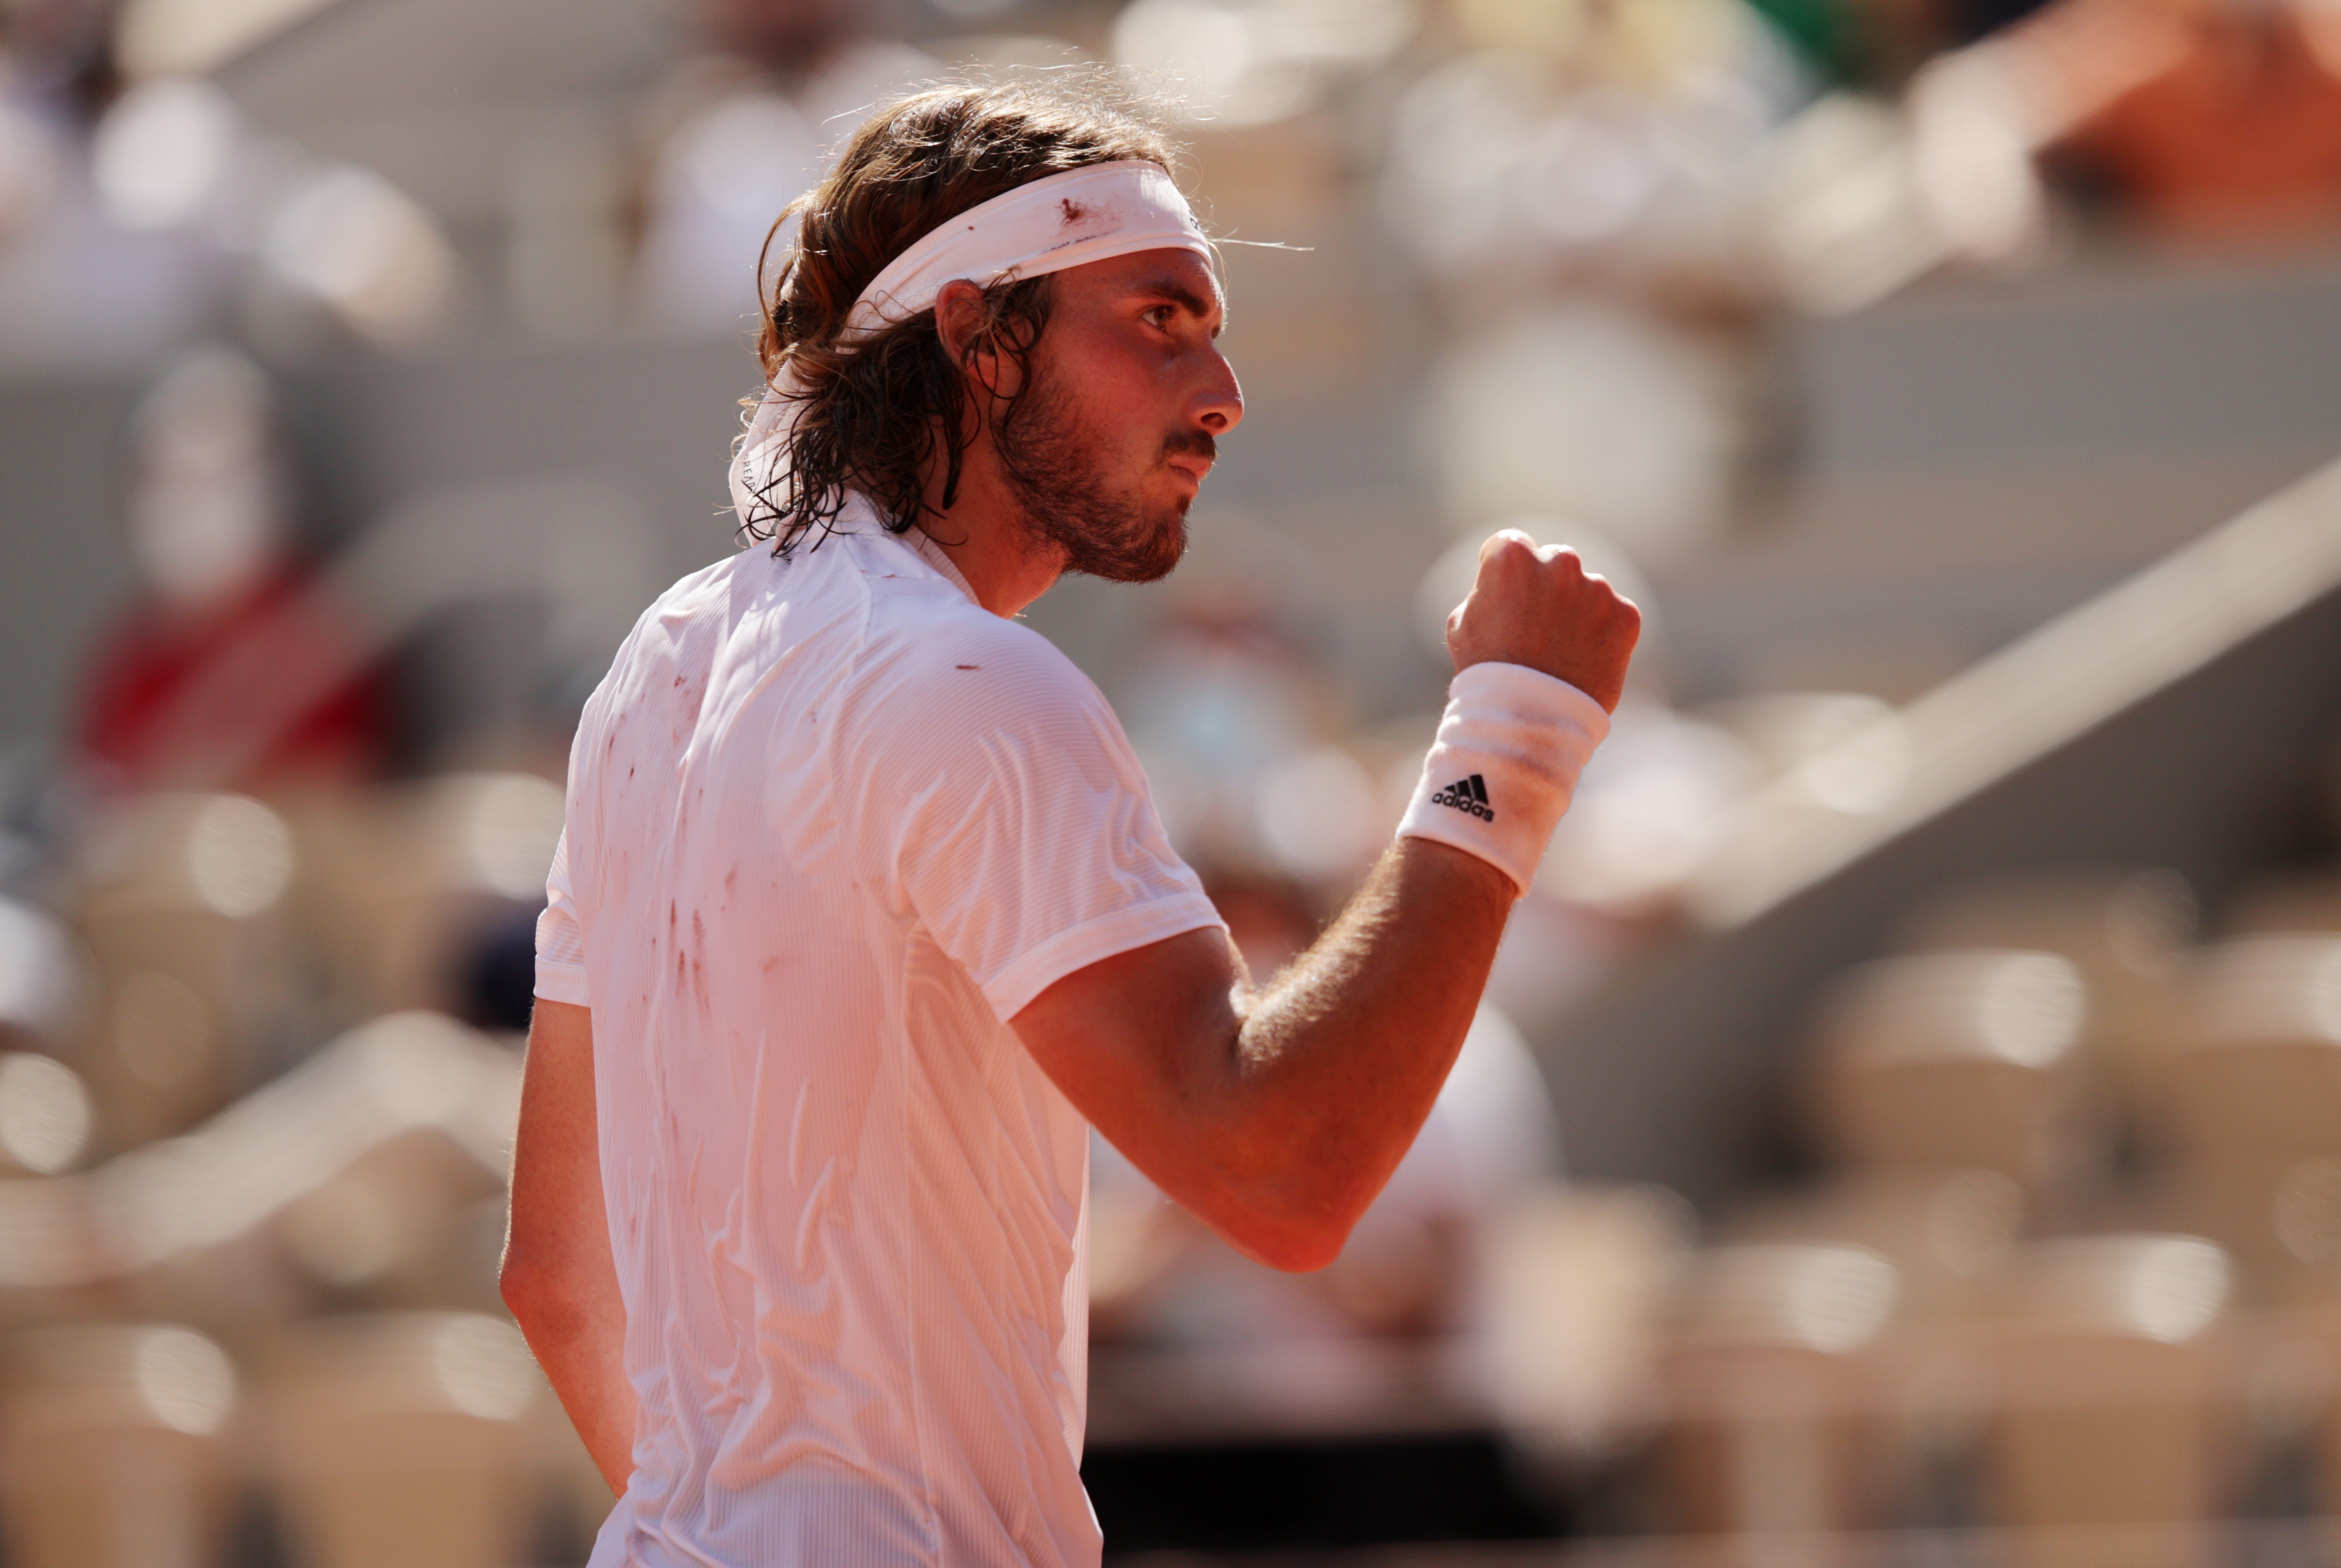 Stefanos Tsitsipas reaches first career grand slam final with win over Alexander Zverev at French Open